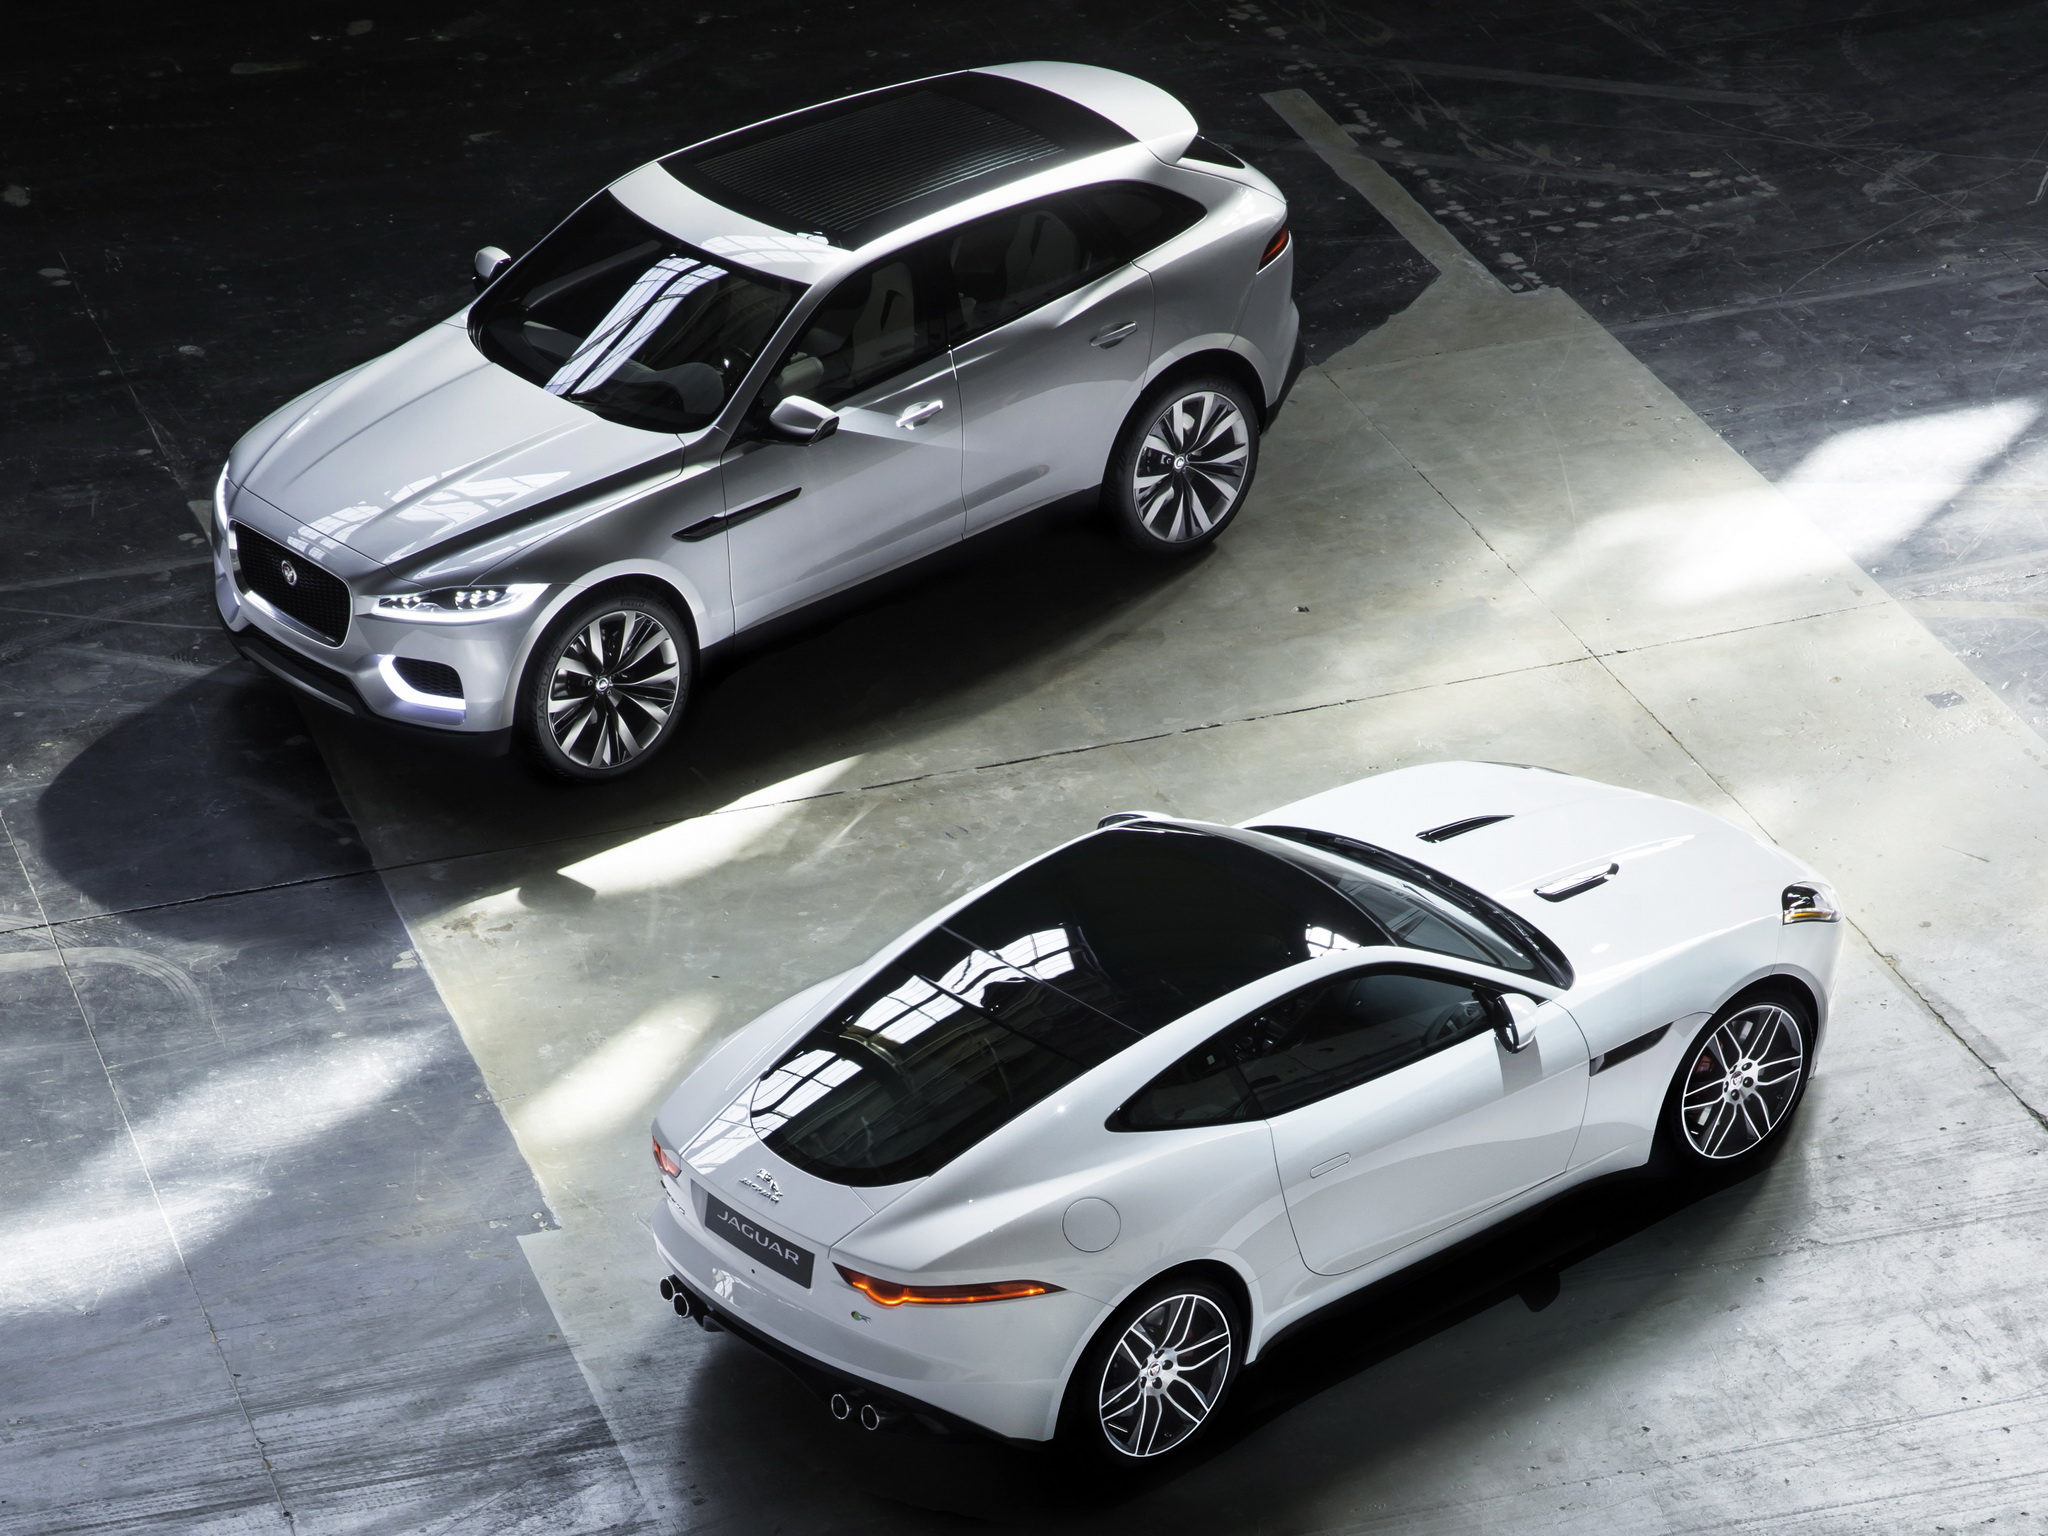 Hd Future Cars Wallpapers Jaguar Land Rover Ready To Experiment With Autonomous